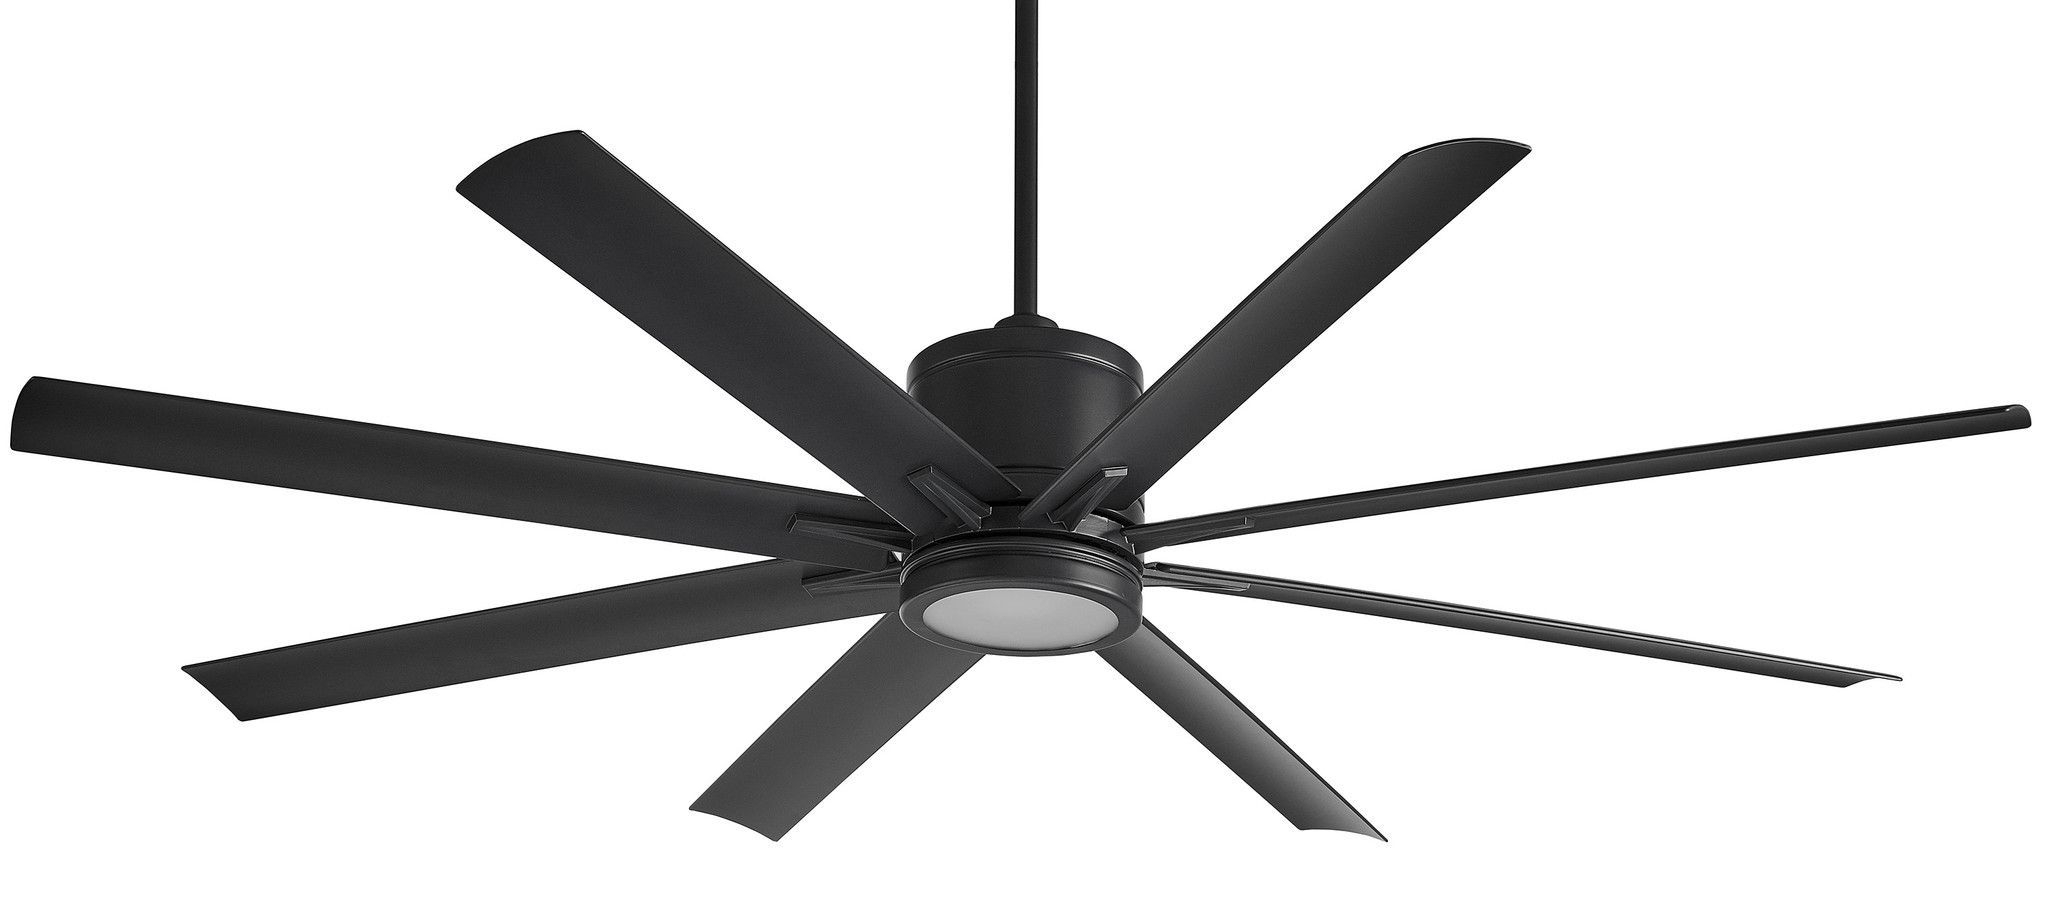 2020 Levon 8 Blade Ceiling Fans In Create An Aesthetic Statement With The Vantage Ceiling Fan's (View 6 of 20)